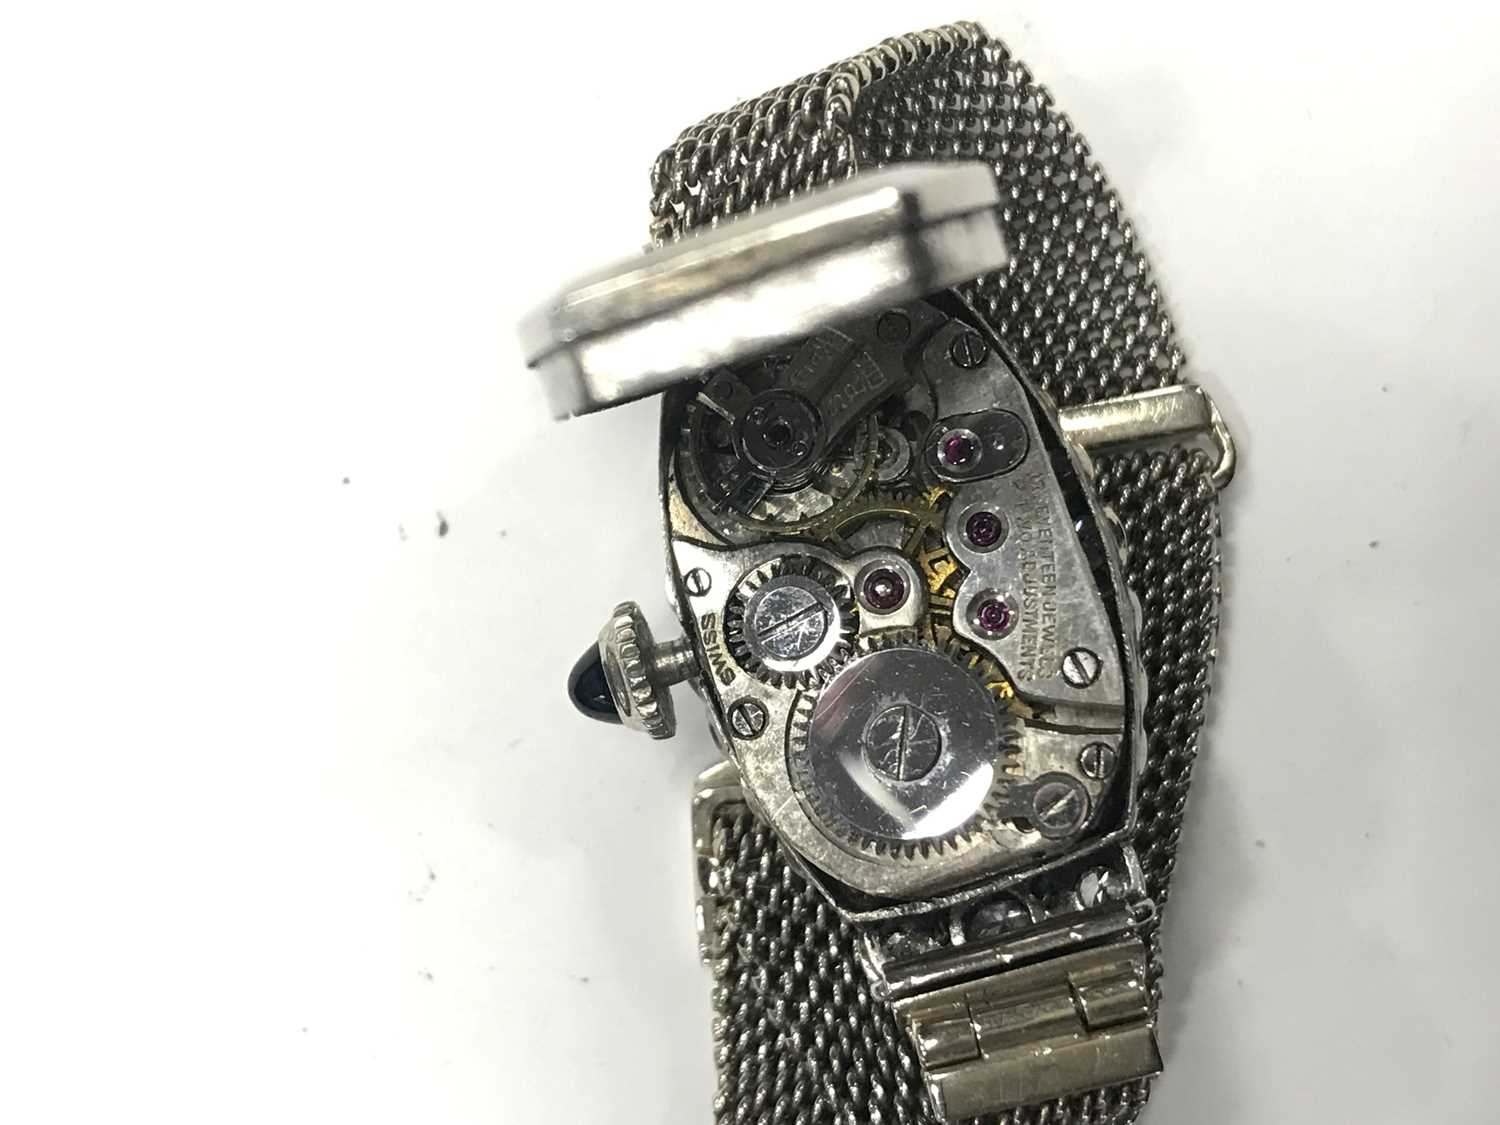 A LADY'S ART DECO DIAMOND COCKTAIL WATCH - Image 3 of 4